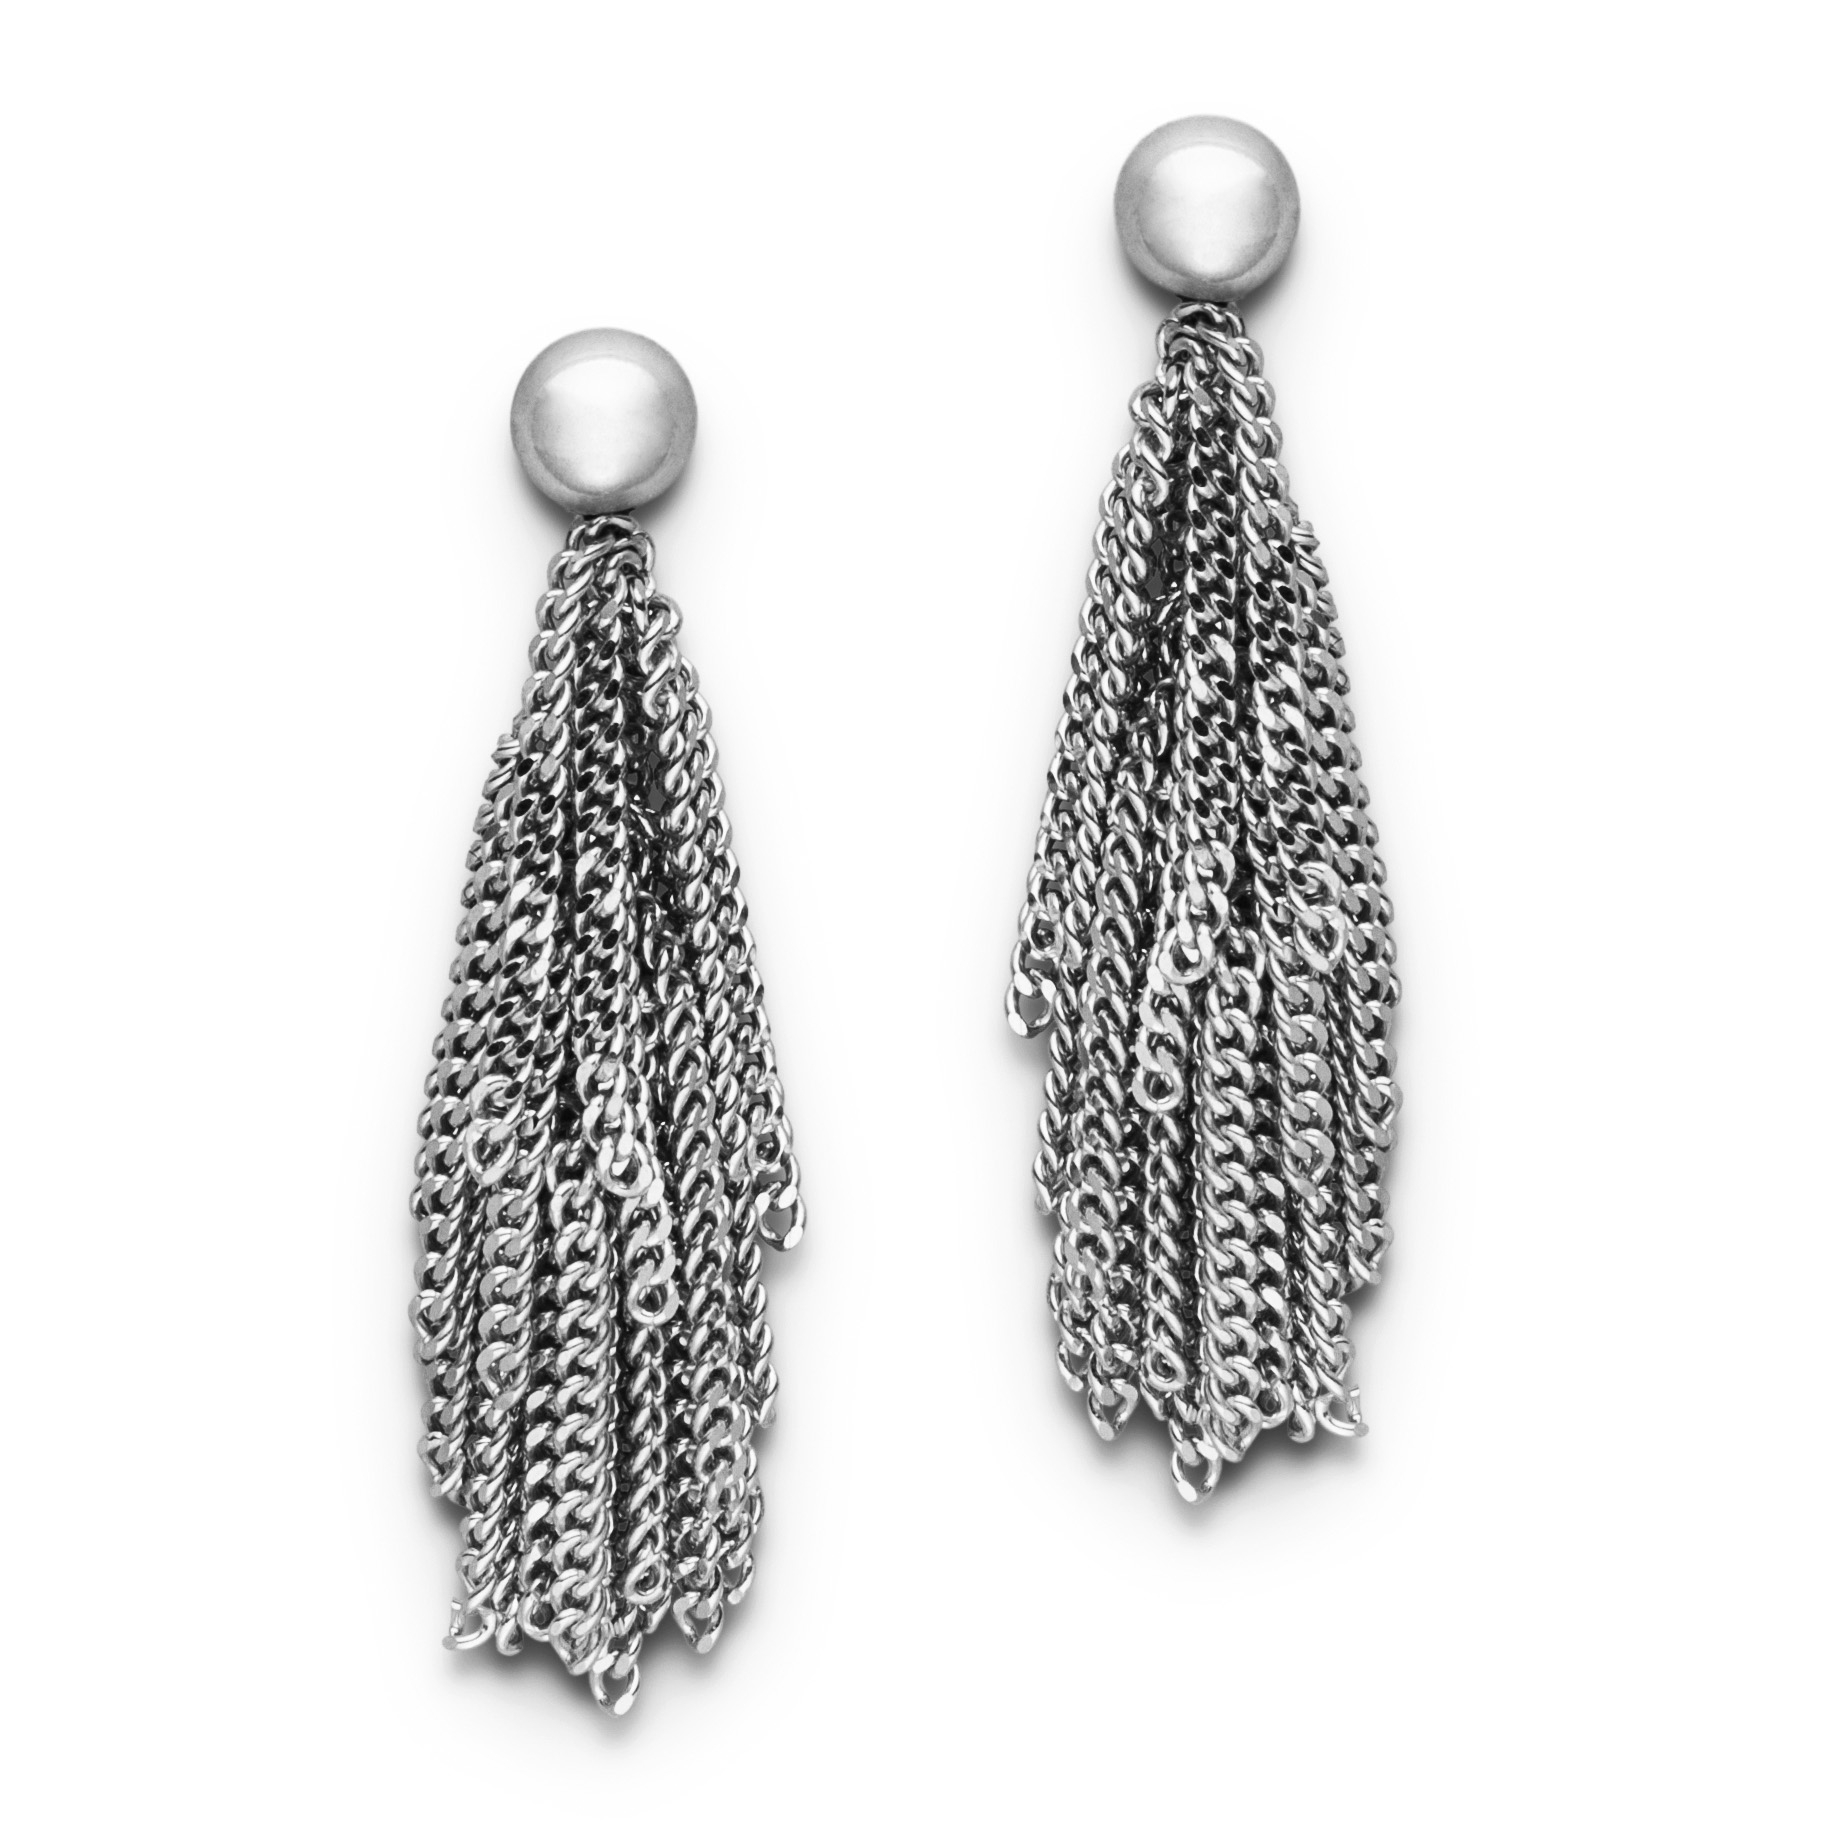 Claudia Milić Silver Siara Earrings